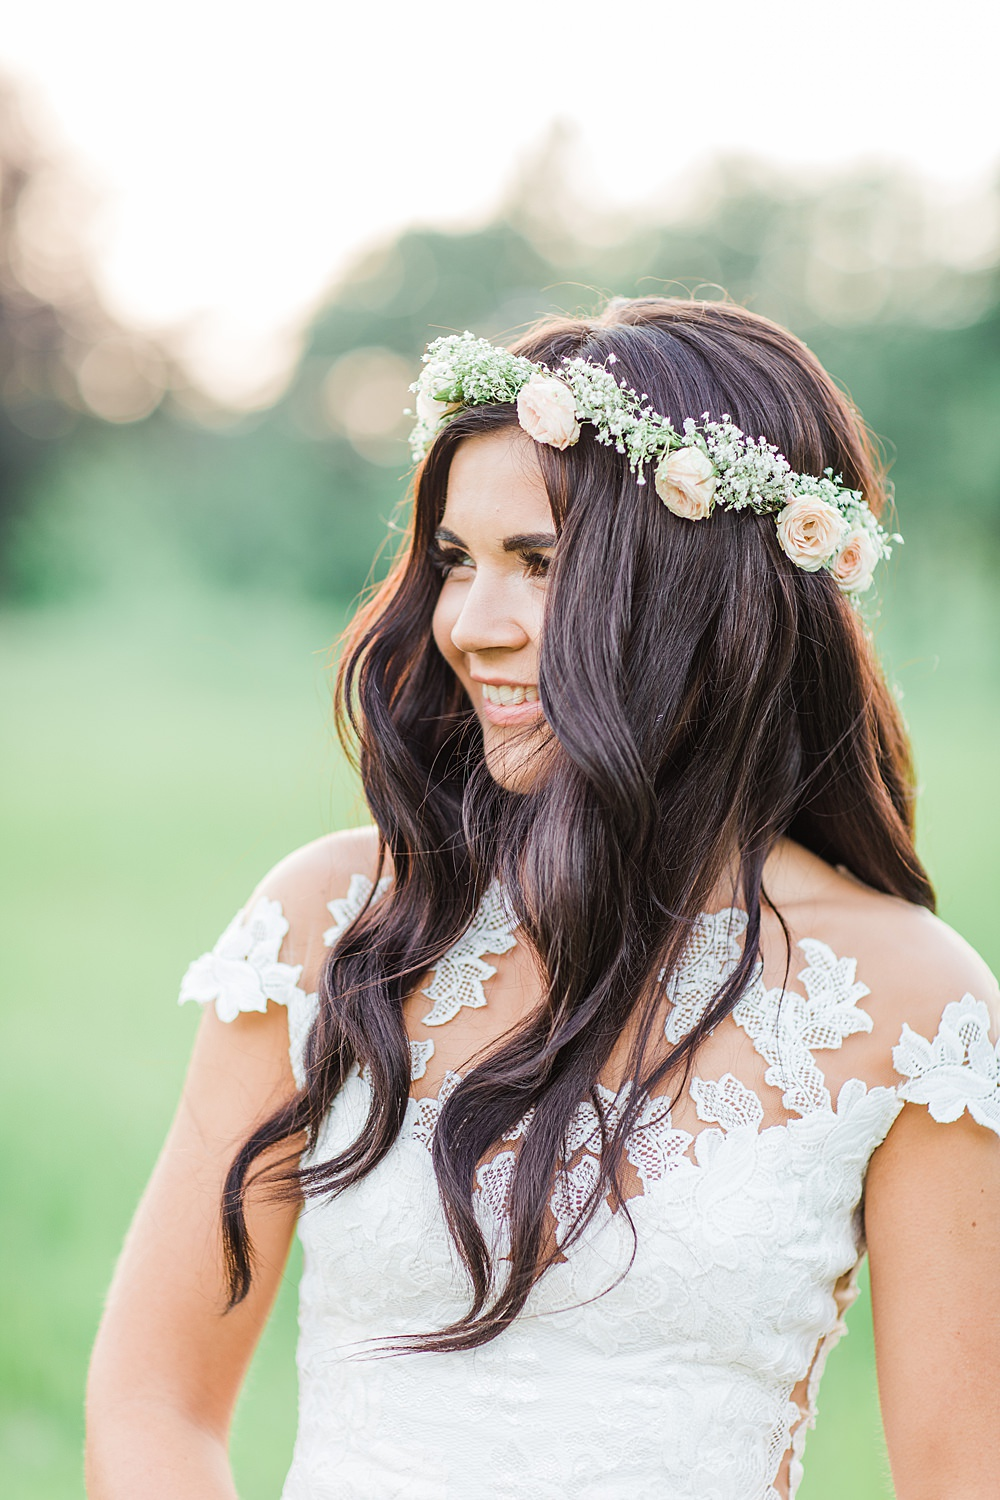 Bride Bridal Hair Flower Crown Long Waves Sheene Mill Wedding Terri & Lori Photography and Film Studio